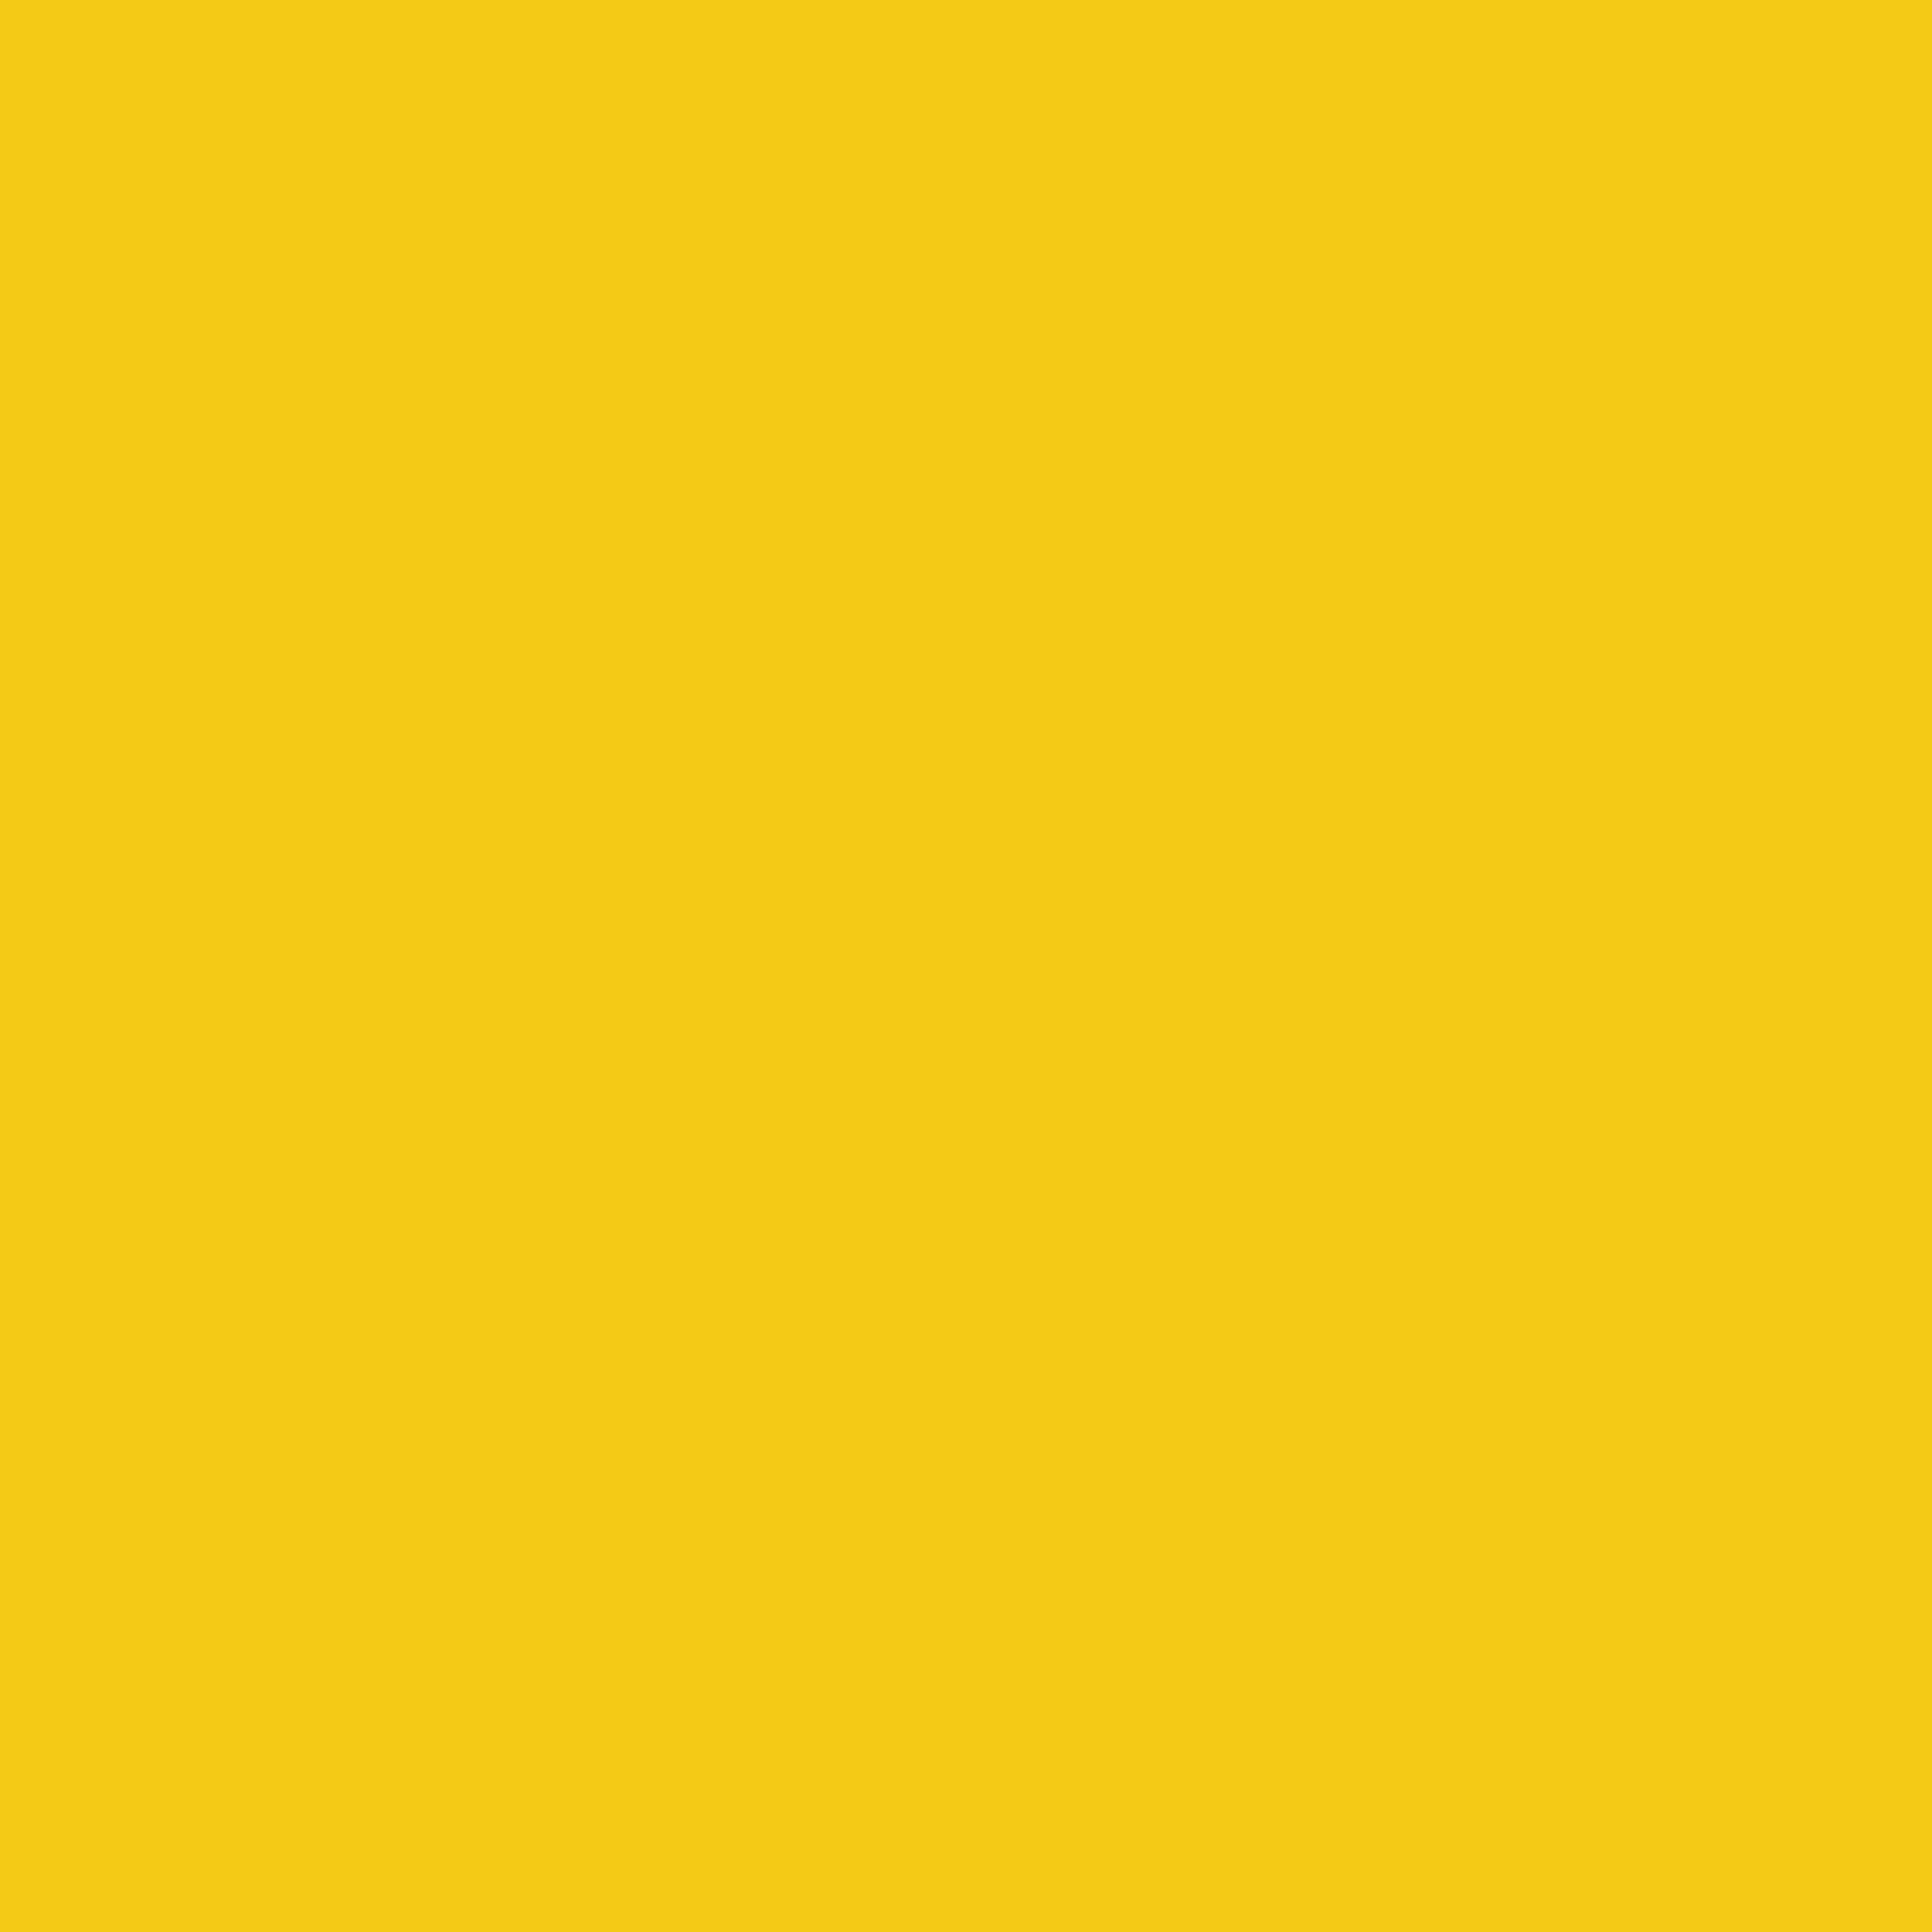 2732x2732 Jonquil Solid Color Background